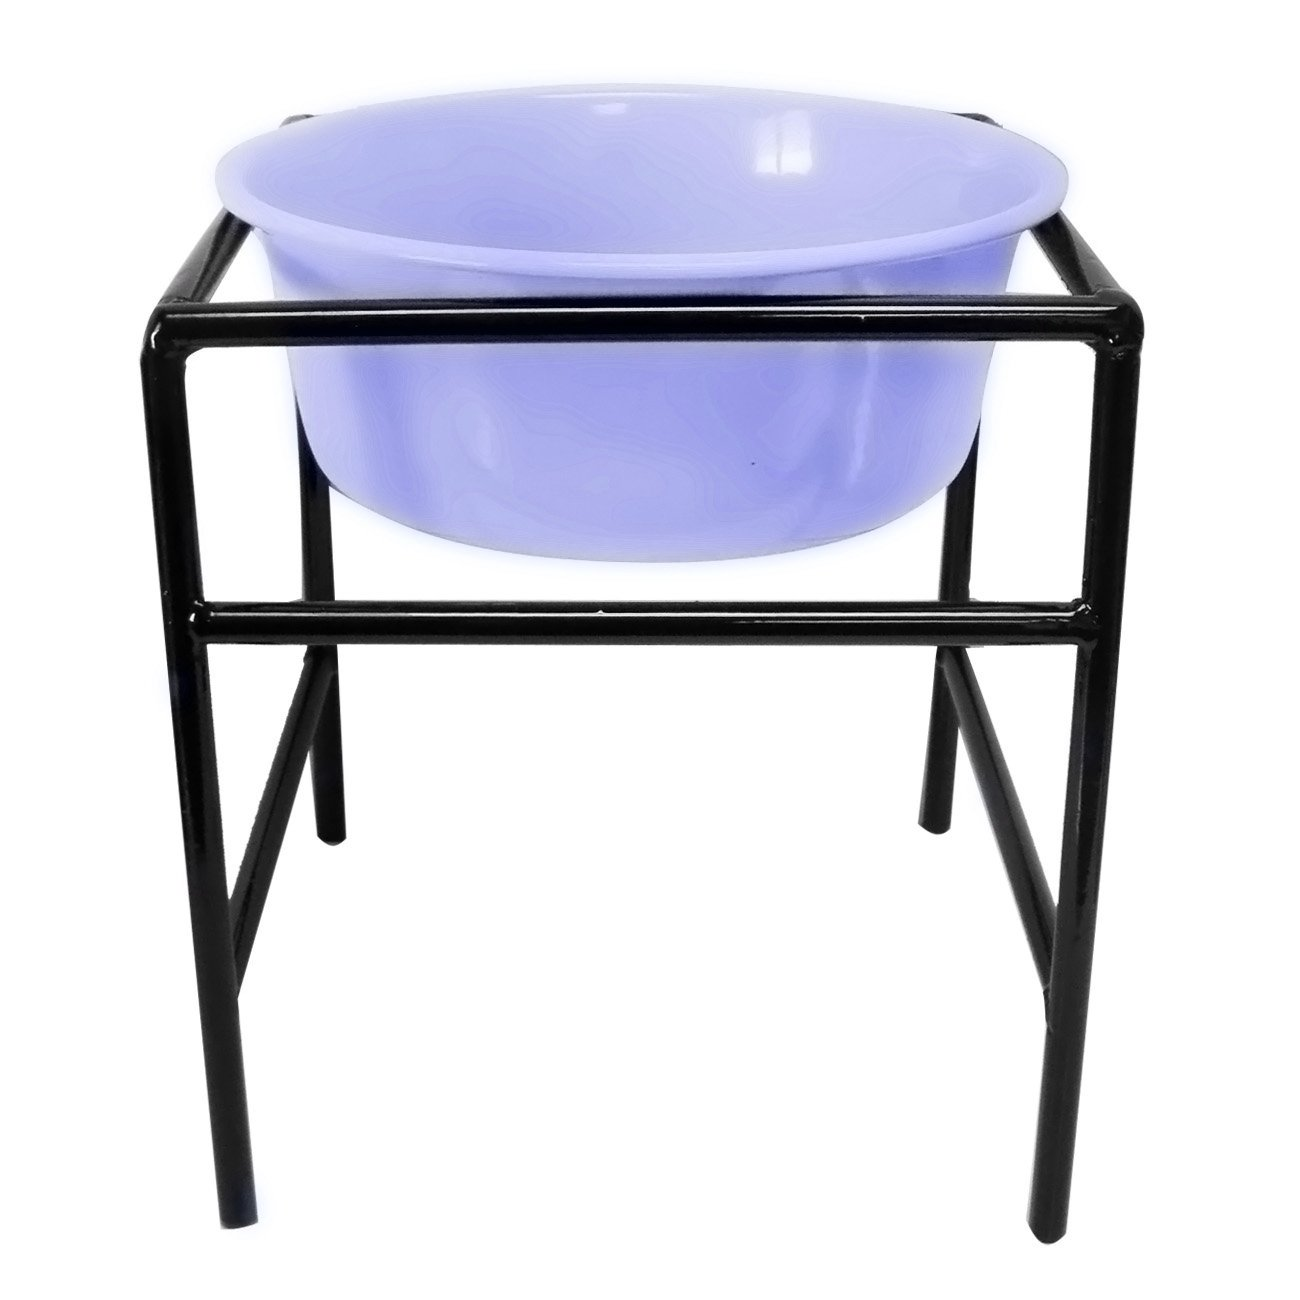 Platinum Pets Platinum Pets 1-Pint Single Modern Diner Stand with Extra Heavy Dish, Sweet Lilac